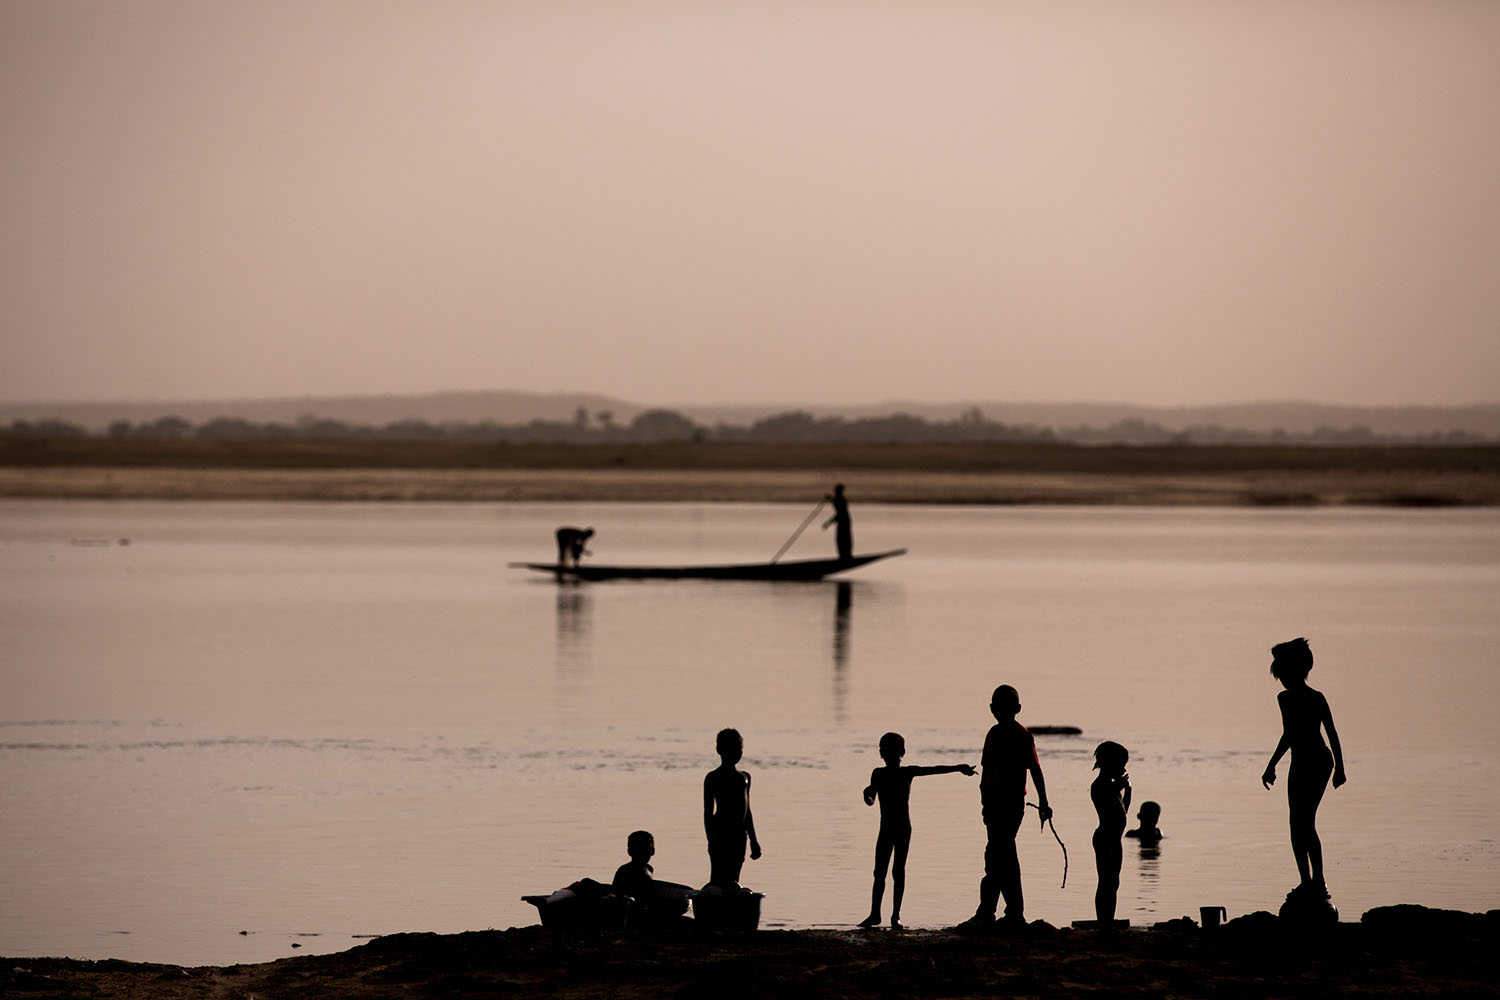 Children playing on the banks of the Niger River, where in 2012 armed Islamic rebels attacked the city of Gao, in Northern Mali and opened fire on civilians.  Ongoing conflicts in the northern regions of Mali continue to have devastating effects education